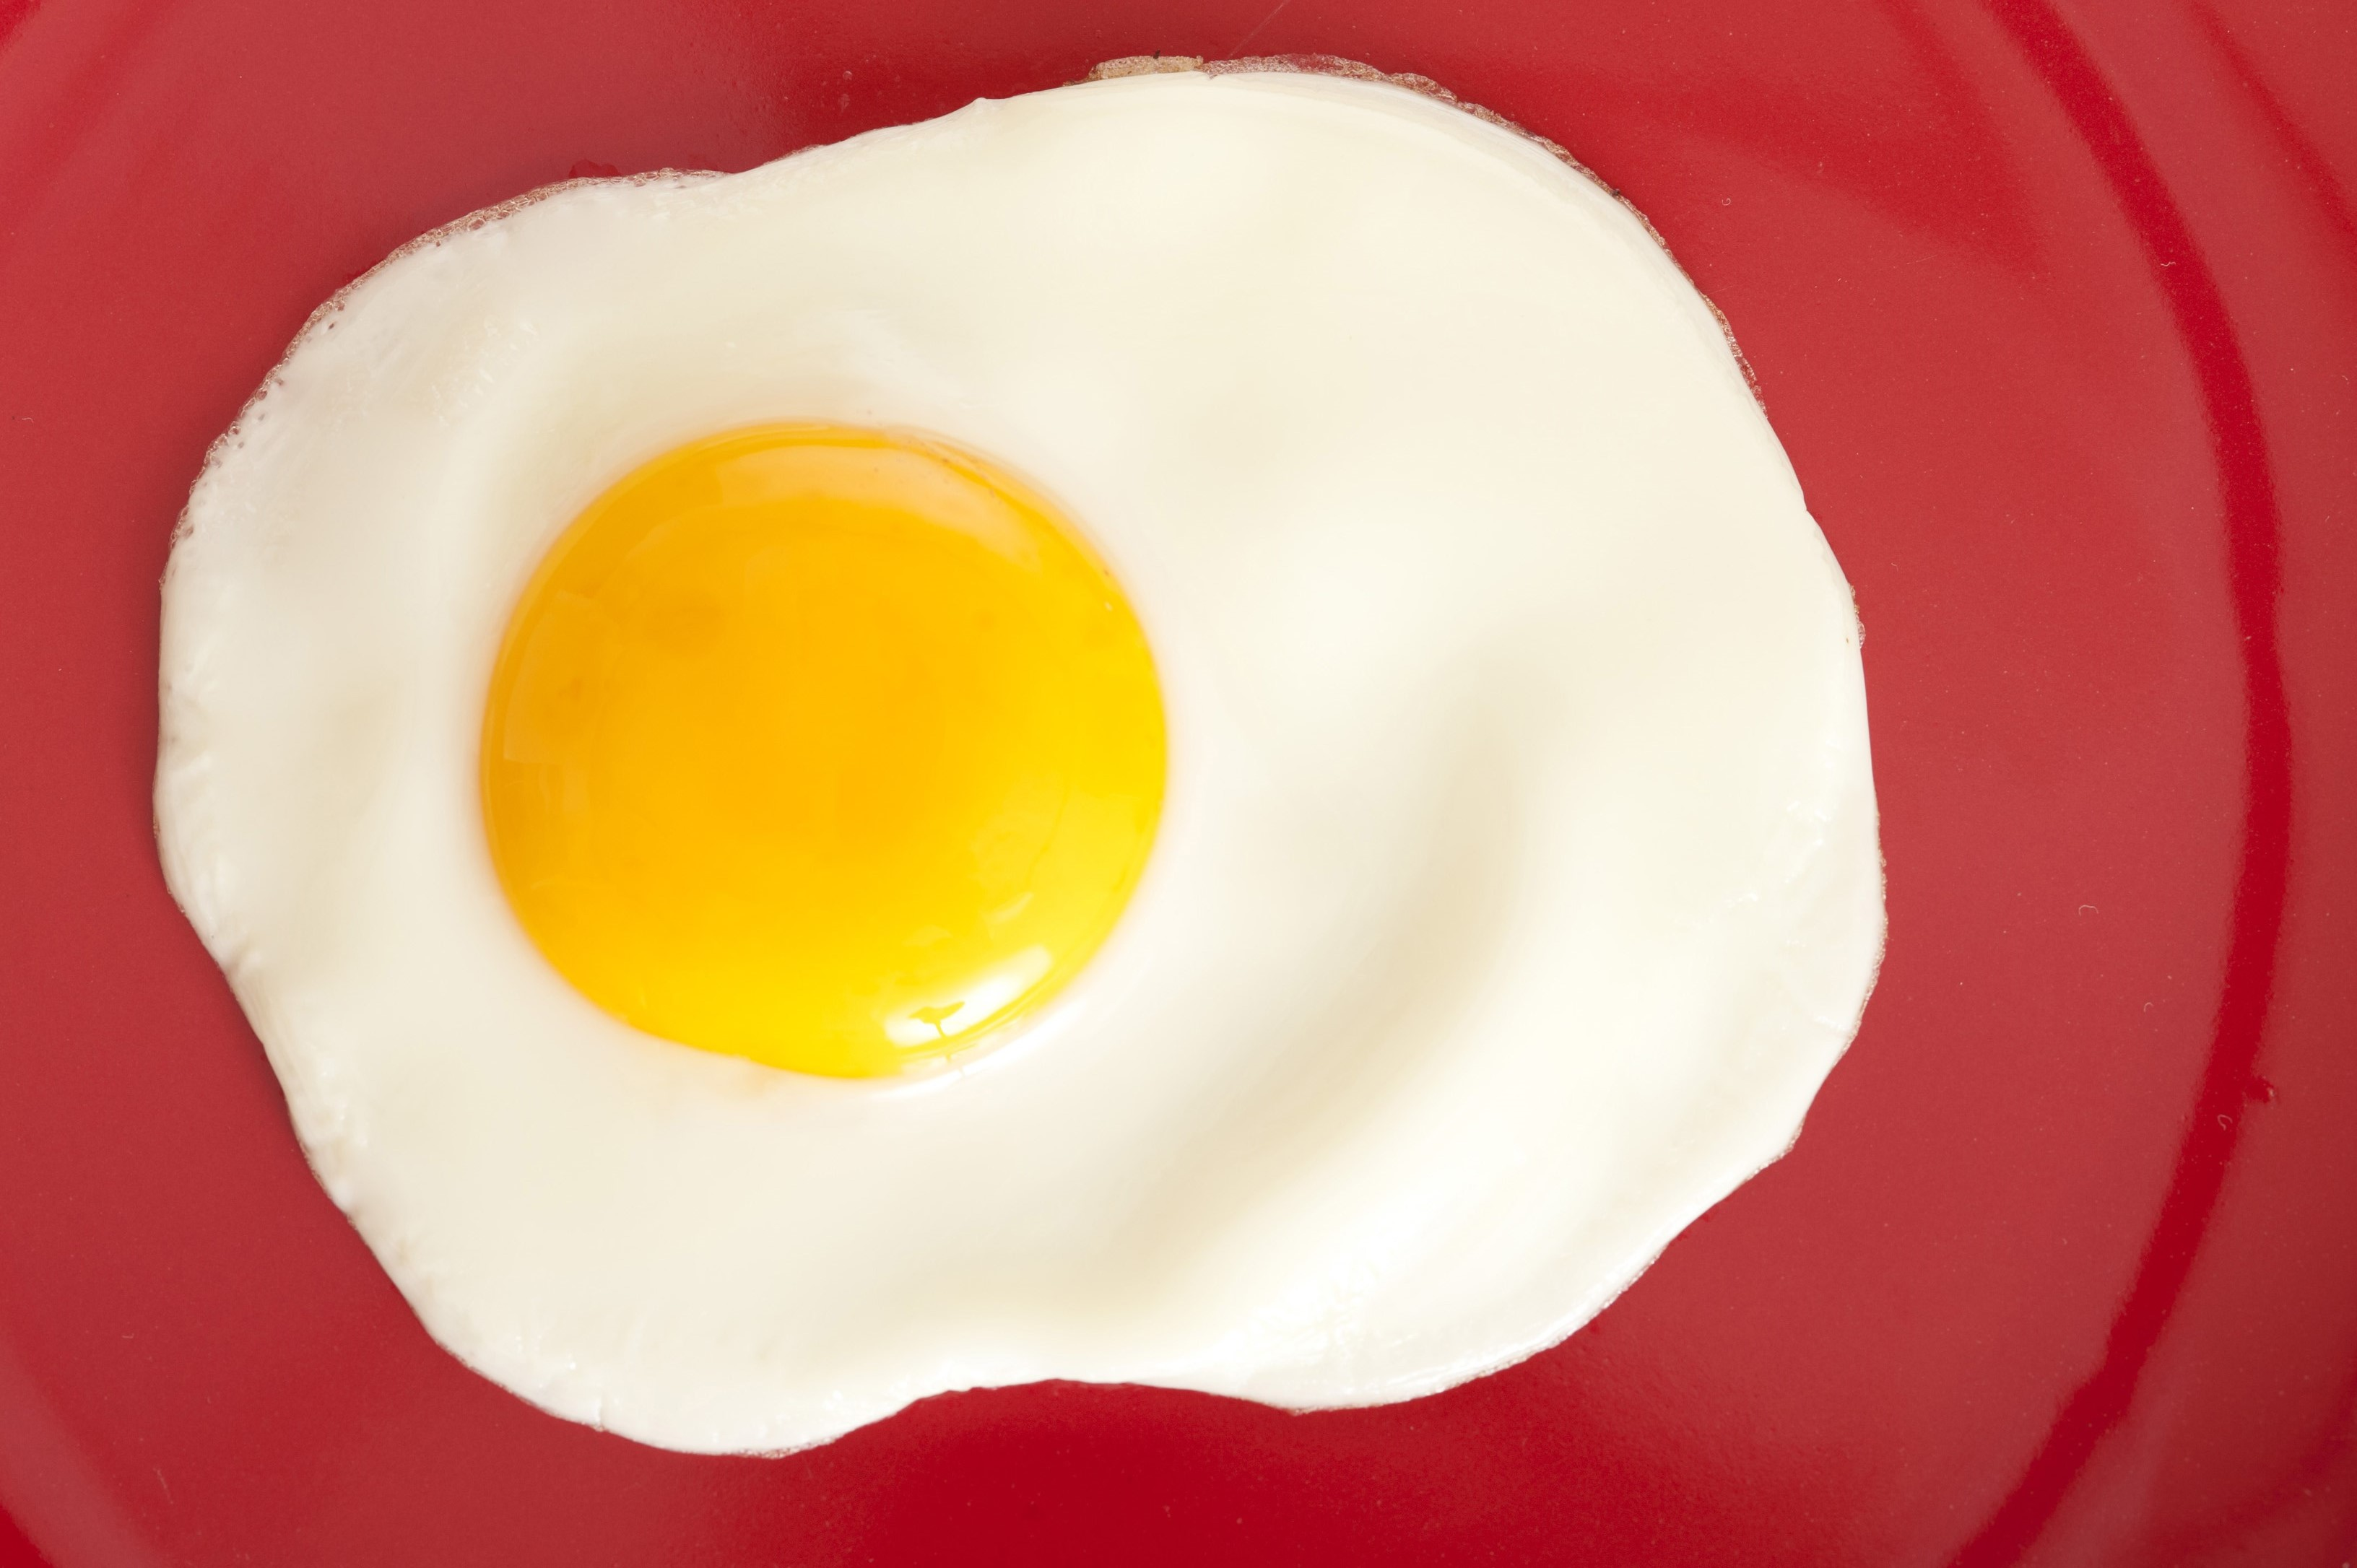 Delicious single fried egg with a deep yellow yolk on a red plate for breakfast, close up overhead view